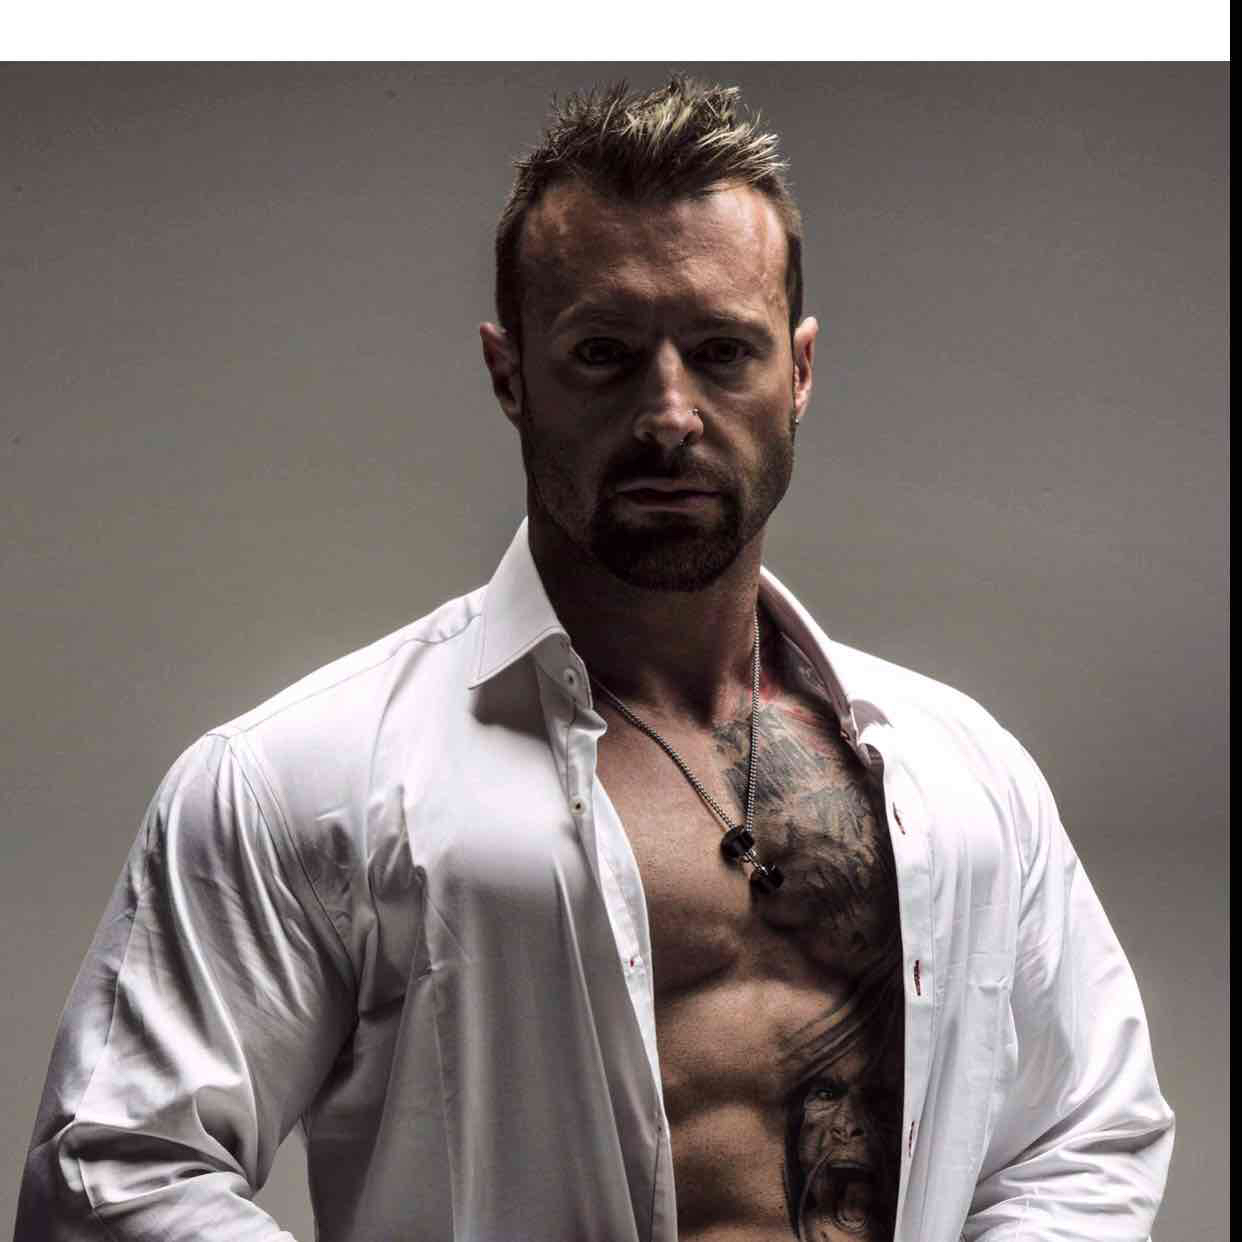 Avatar of Kris Gethin